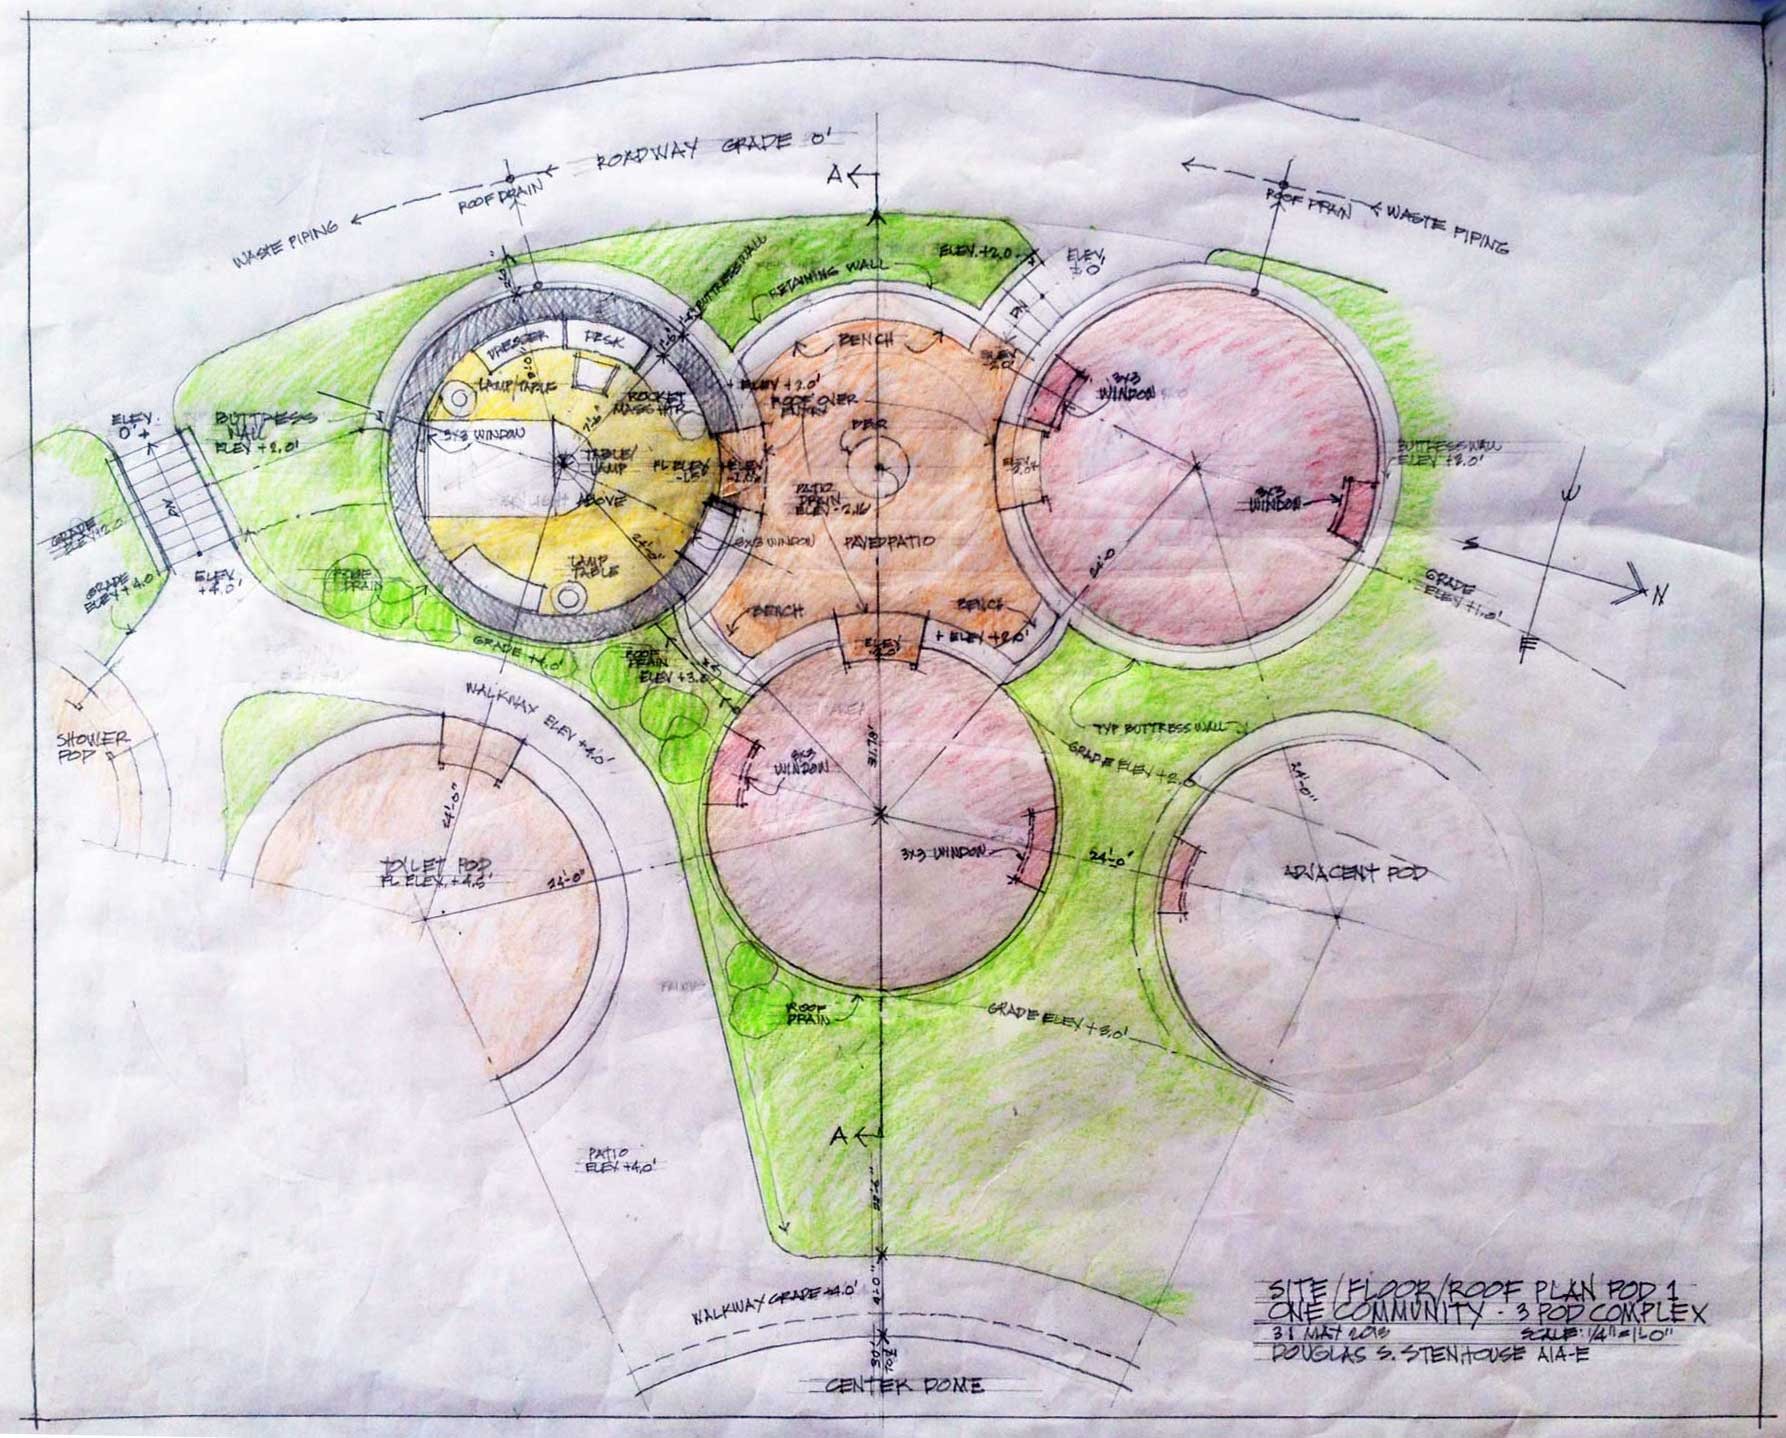 earthbag consruction, superadobe construction, super adobe construction, earth building, earth dome, dome home, One Community, sustainable living, eco living, dirt home, building with earth, earthbag village, sustainable building, construction of the future